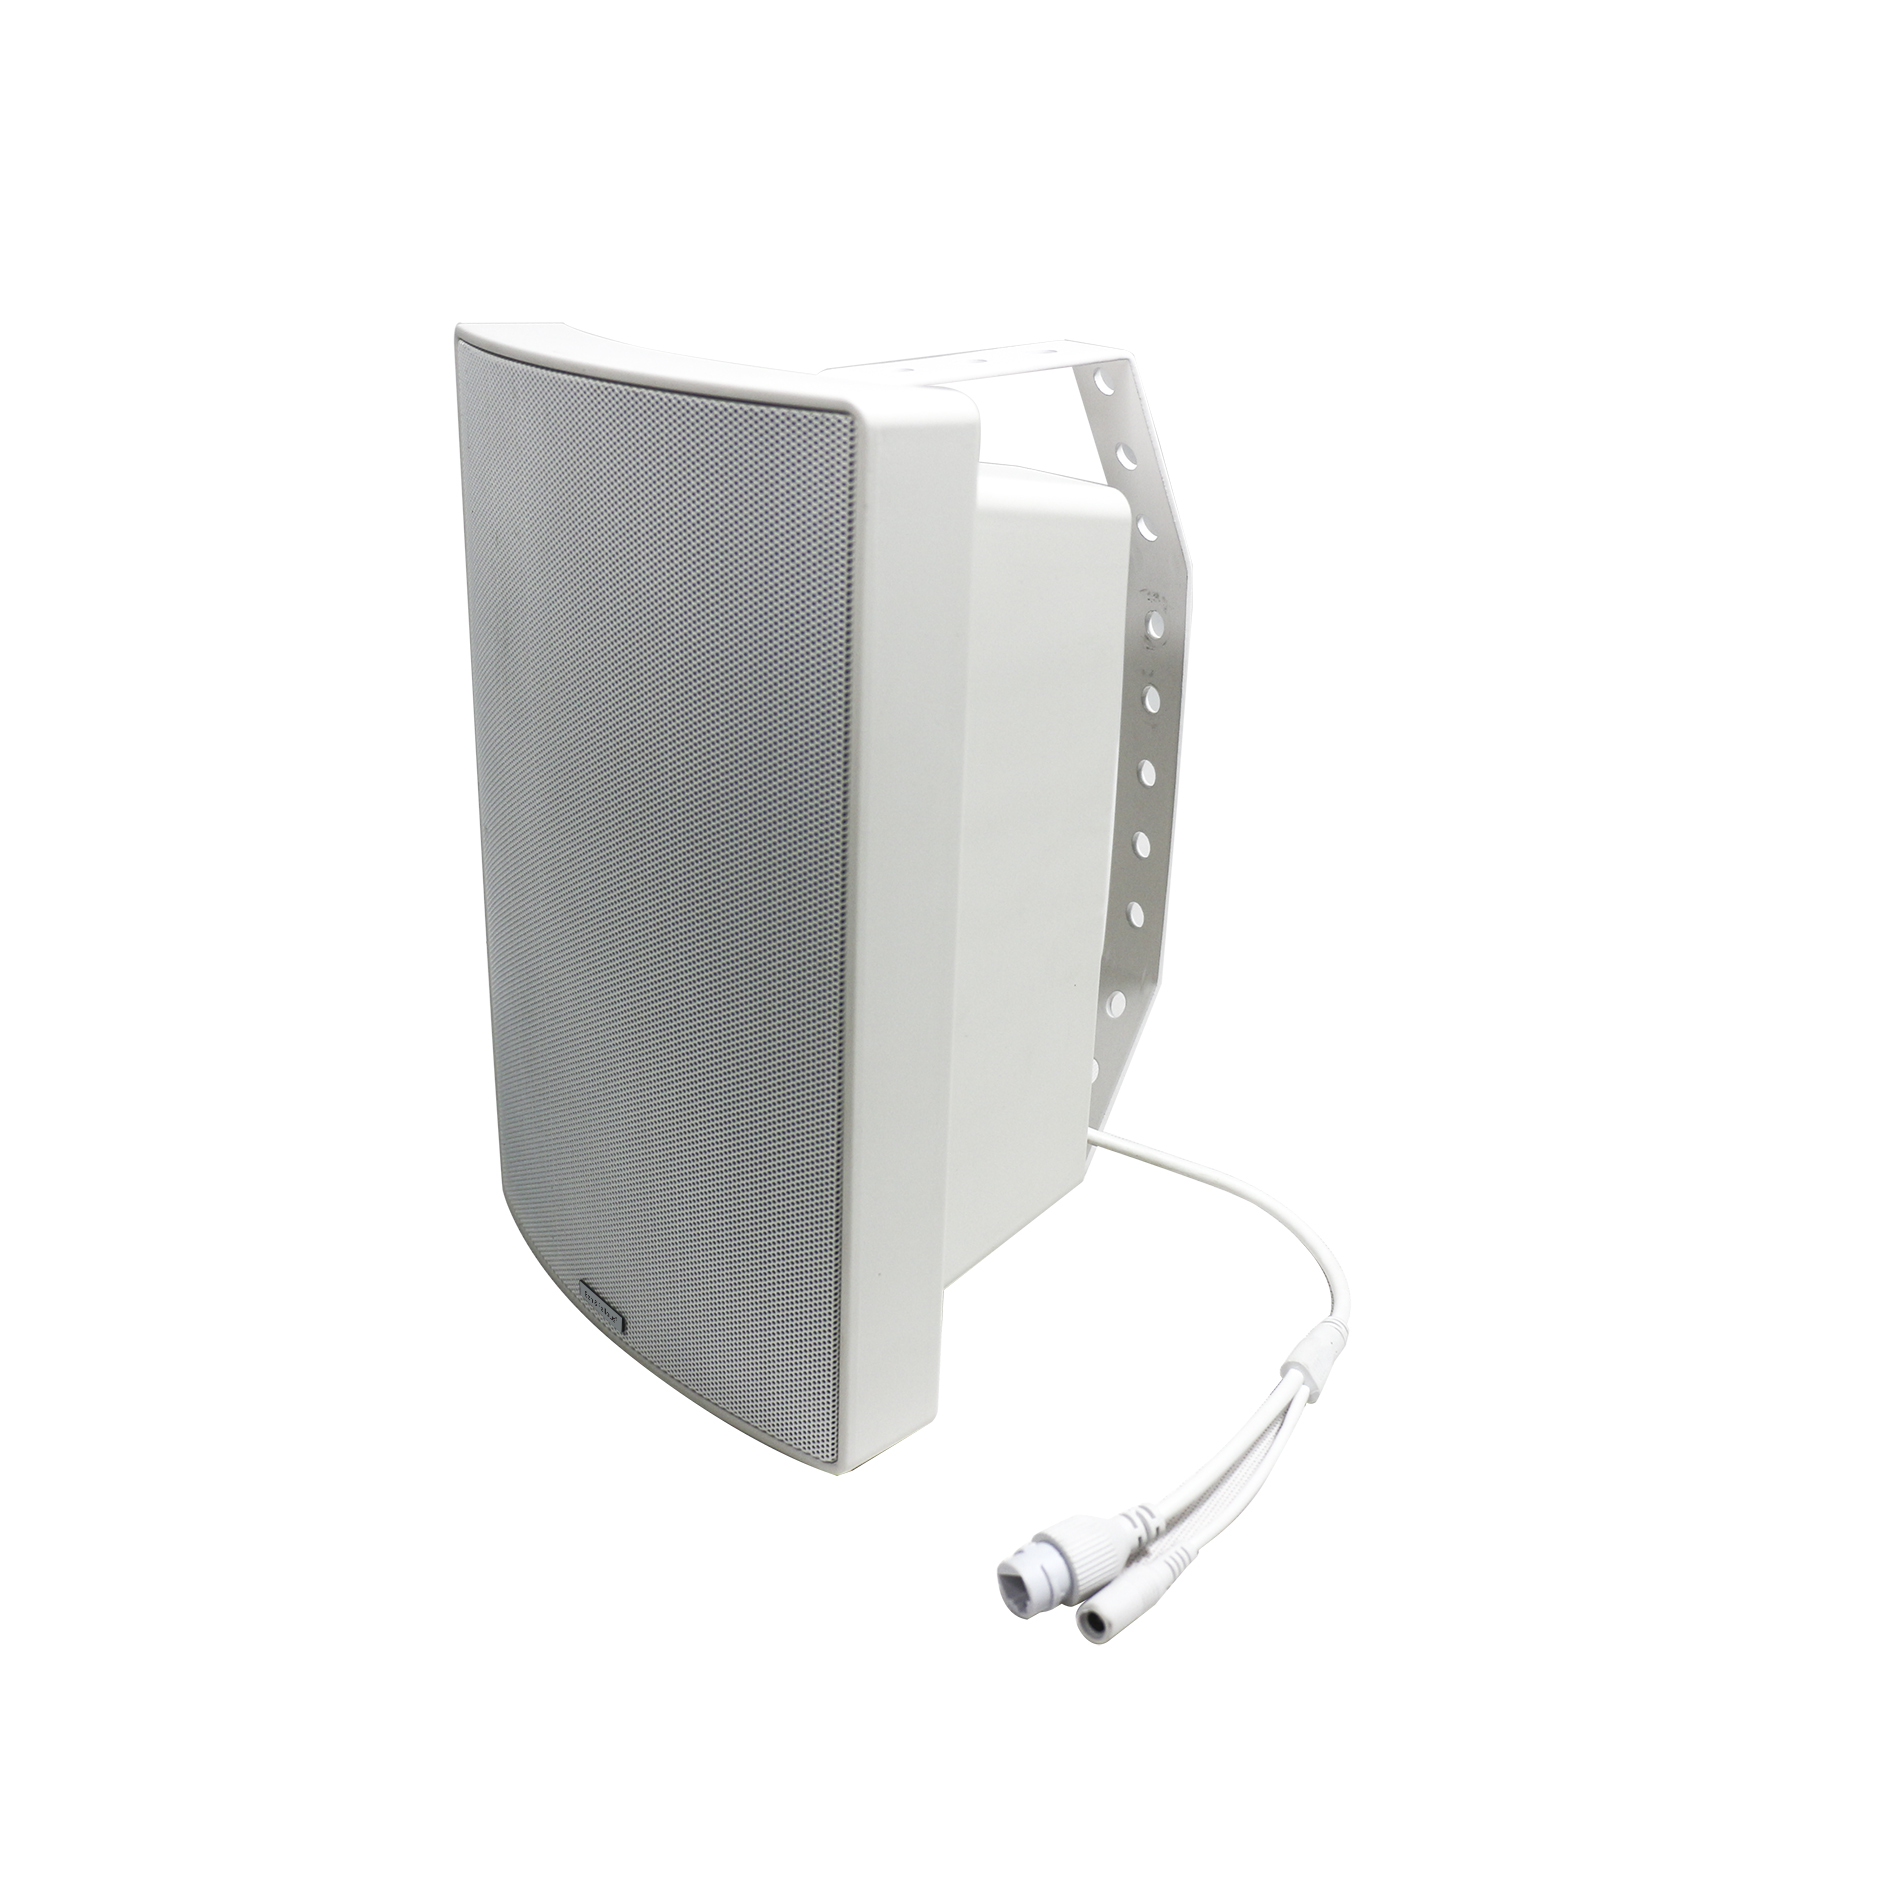 Outdoor Dante network Wall mount Speaker 30W with DSP,RJ45 port, Waterproof IPX4 body, supports PoE power supply